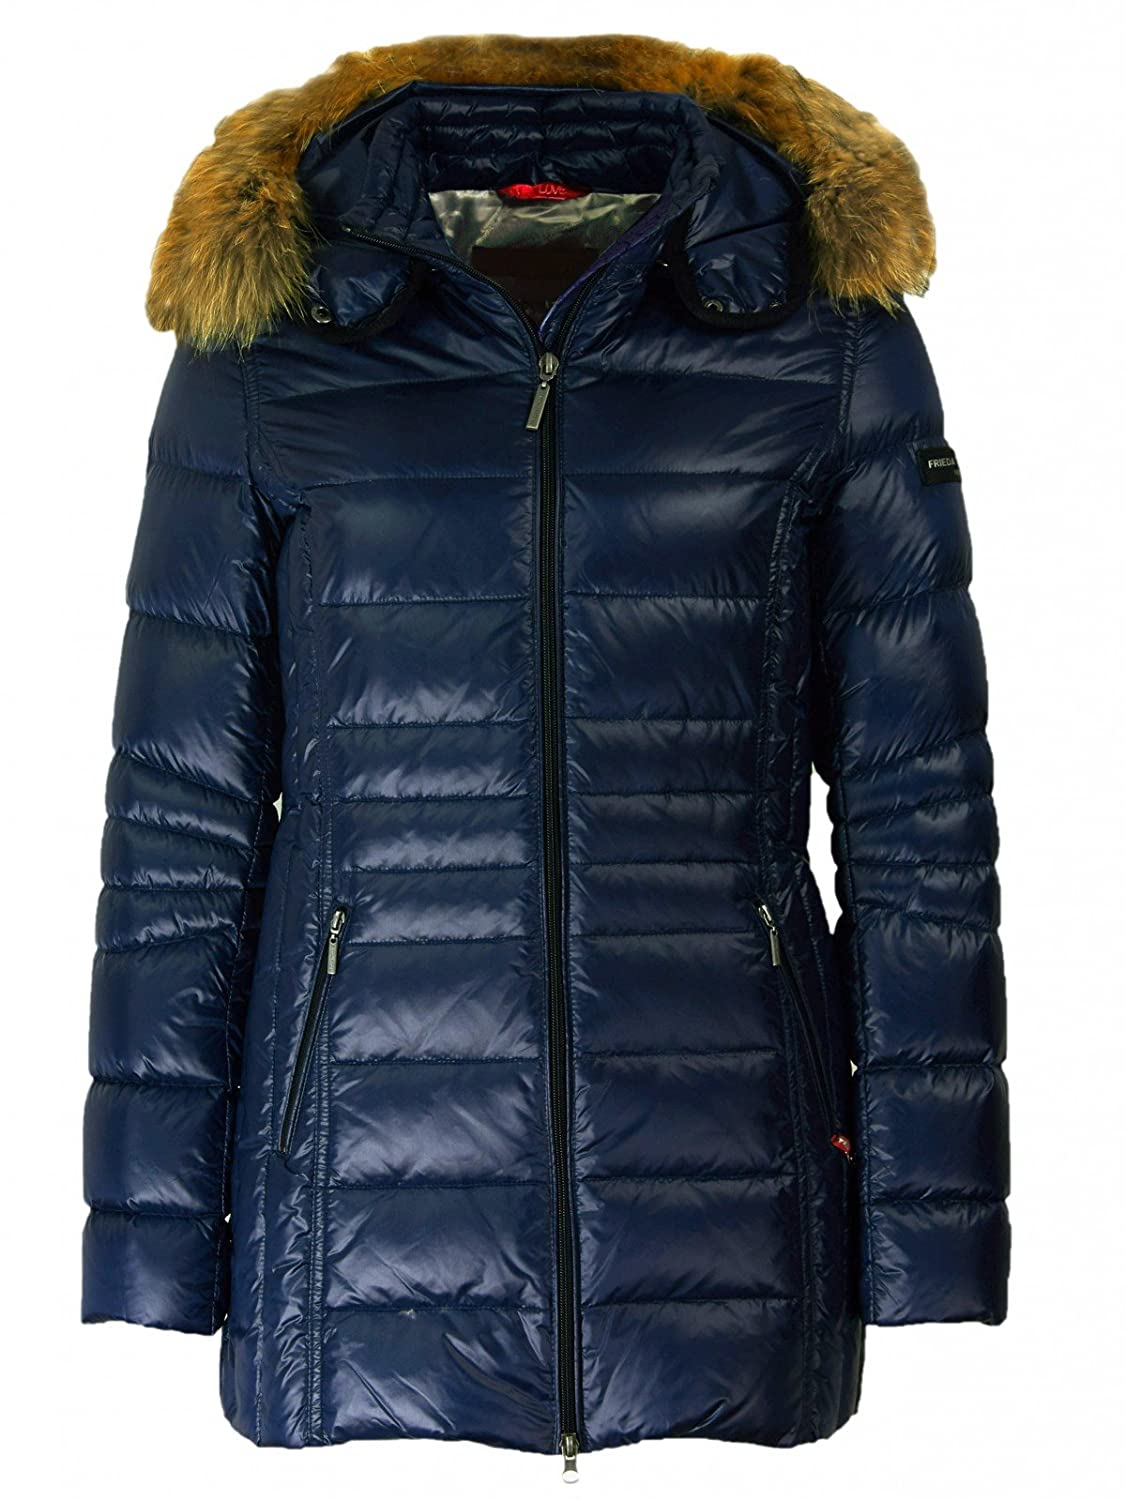 Frieda & Freddies Damen Lange Daunenjacke mit Fellbesatz in